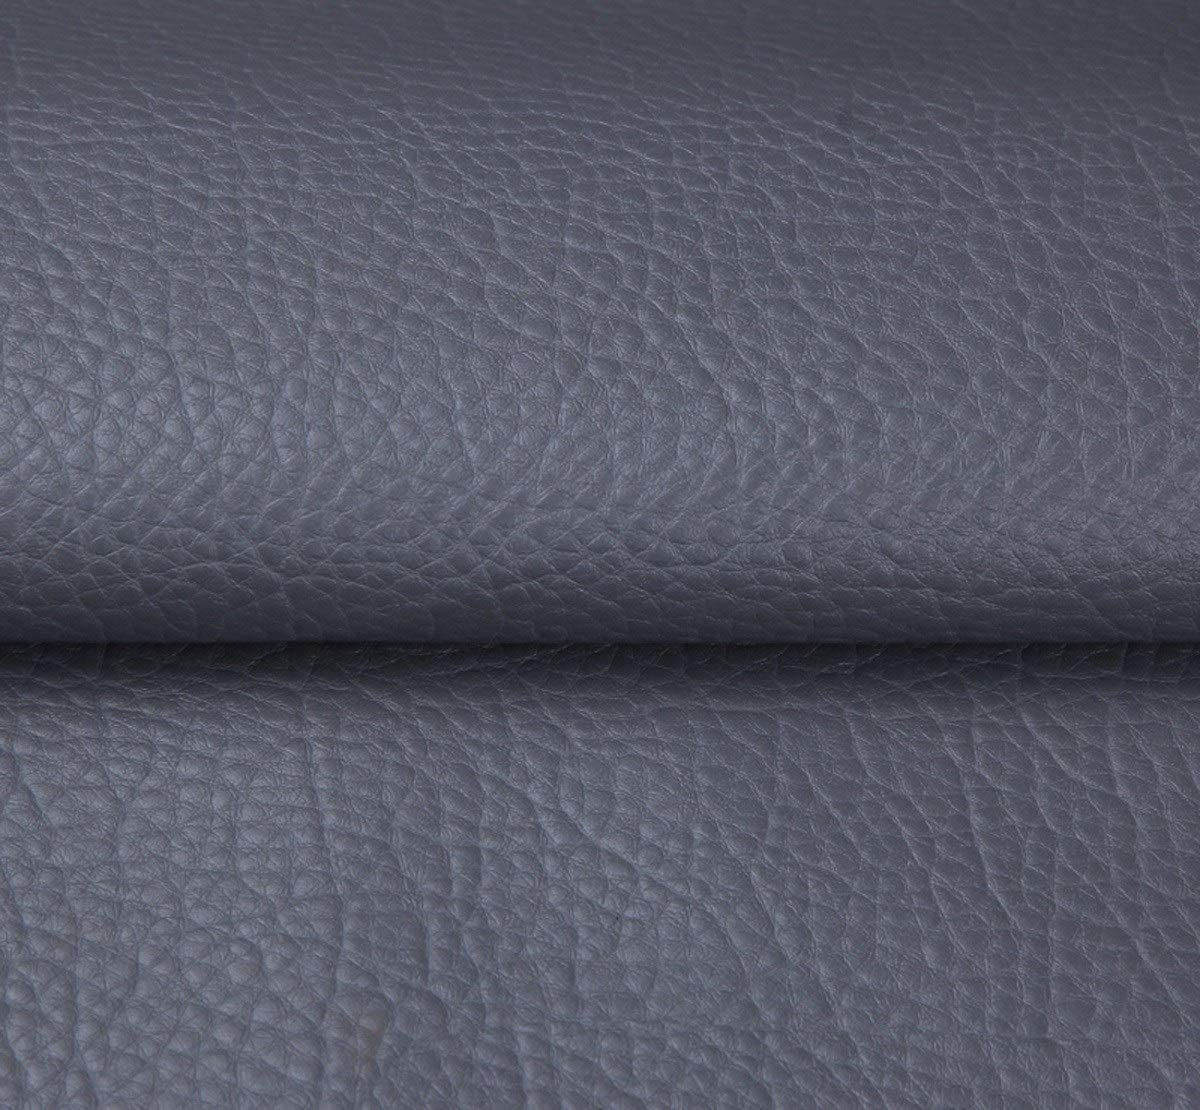 MAGFYLY Leather Material Fabric Grained Faux Leather Fabric Heavy Duty Leatherette Leather Cloth Upholstery Textured Material Sold by Meter Per 1 Meter X 138cm (Color : Gray)